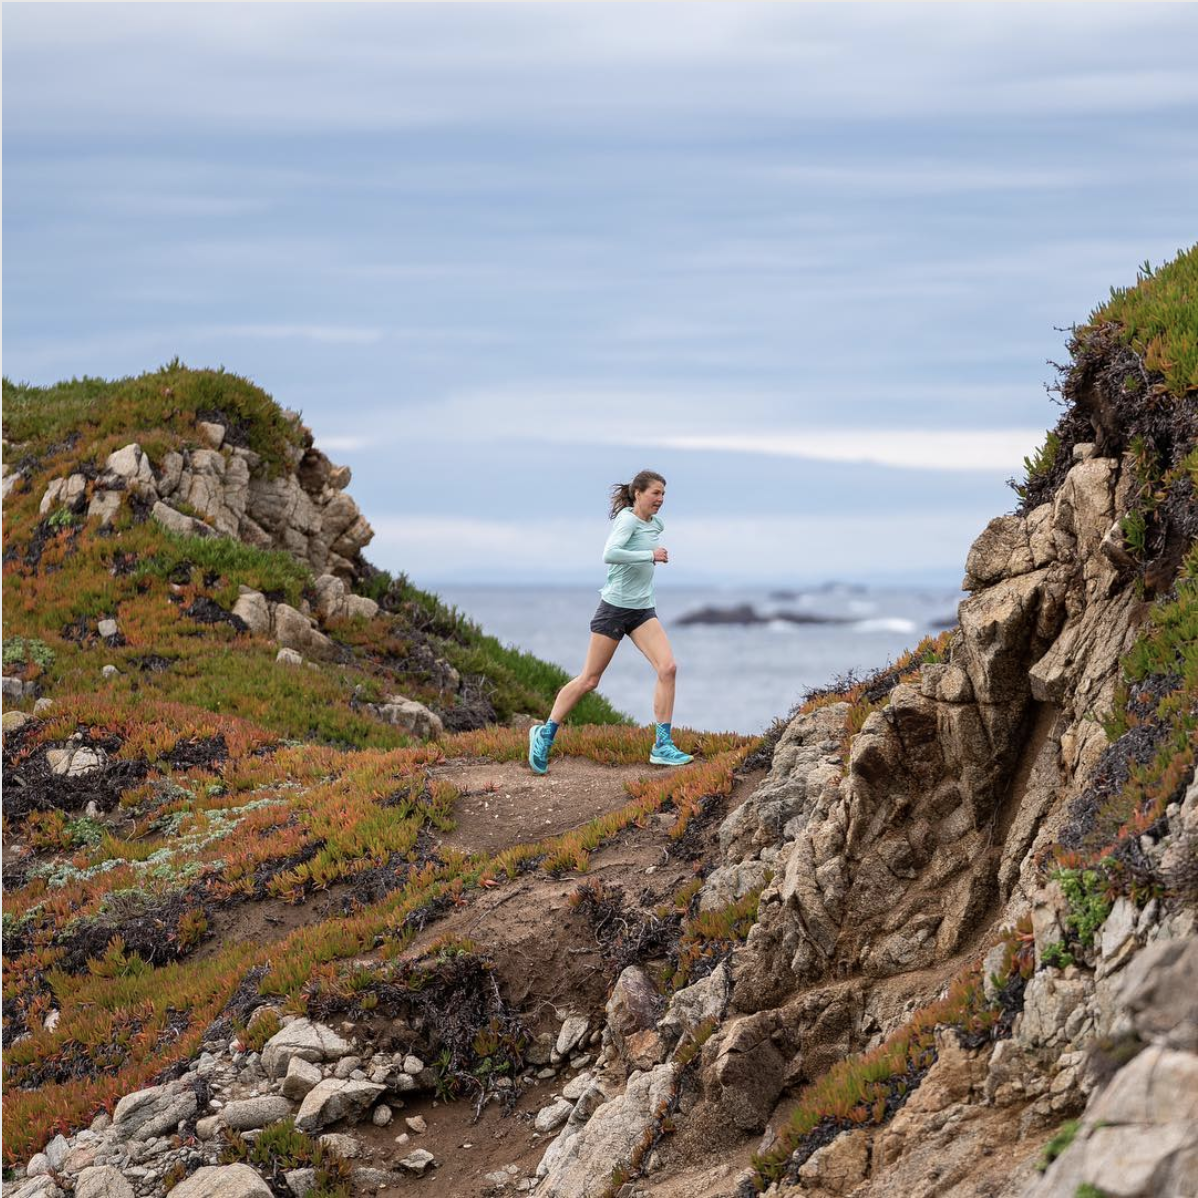 Woman running on a mountain by the ocean wearing a blue sweatshirt, dark shorts and bright blue running shoes